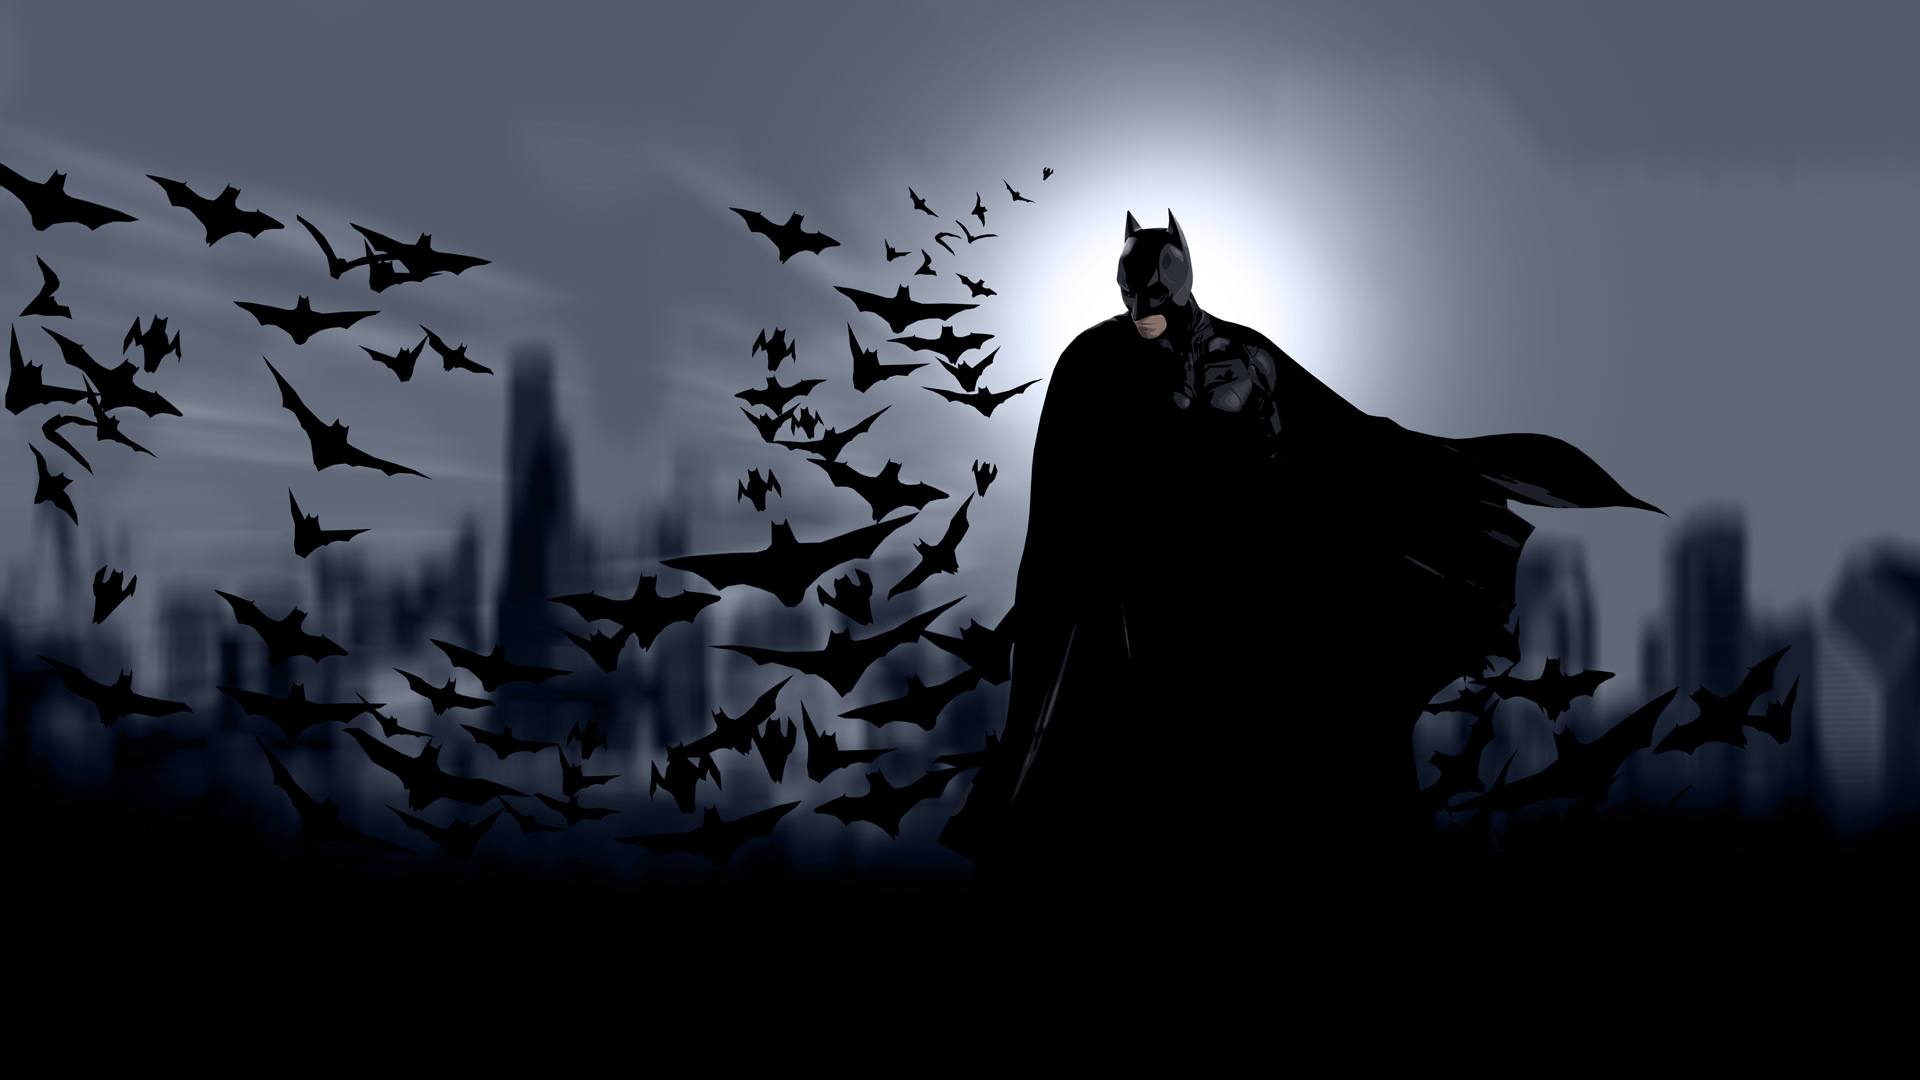 Amazing Batman Wallpaper